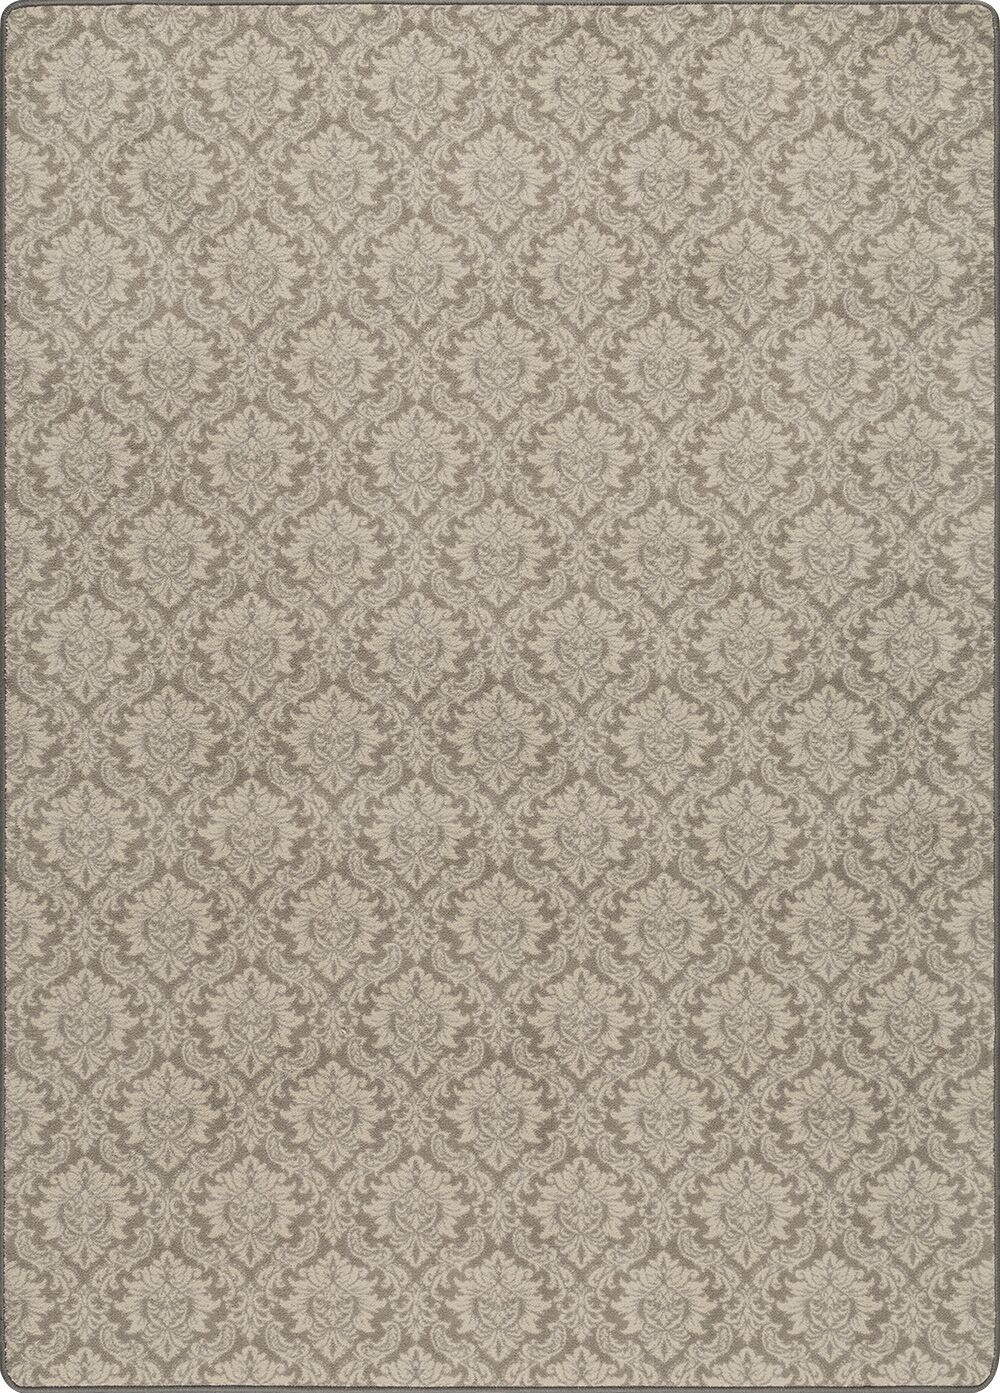 Tinsman Antique Khaki Area Rug Rug Size: Rectangle 3'10